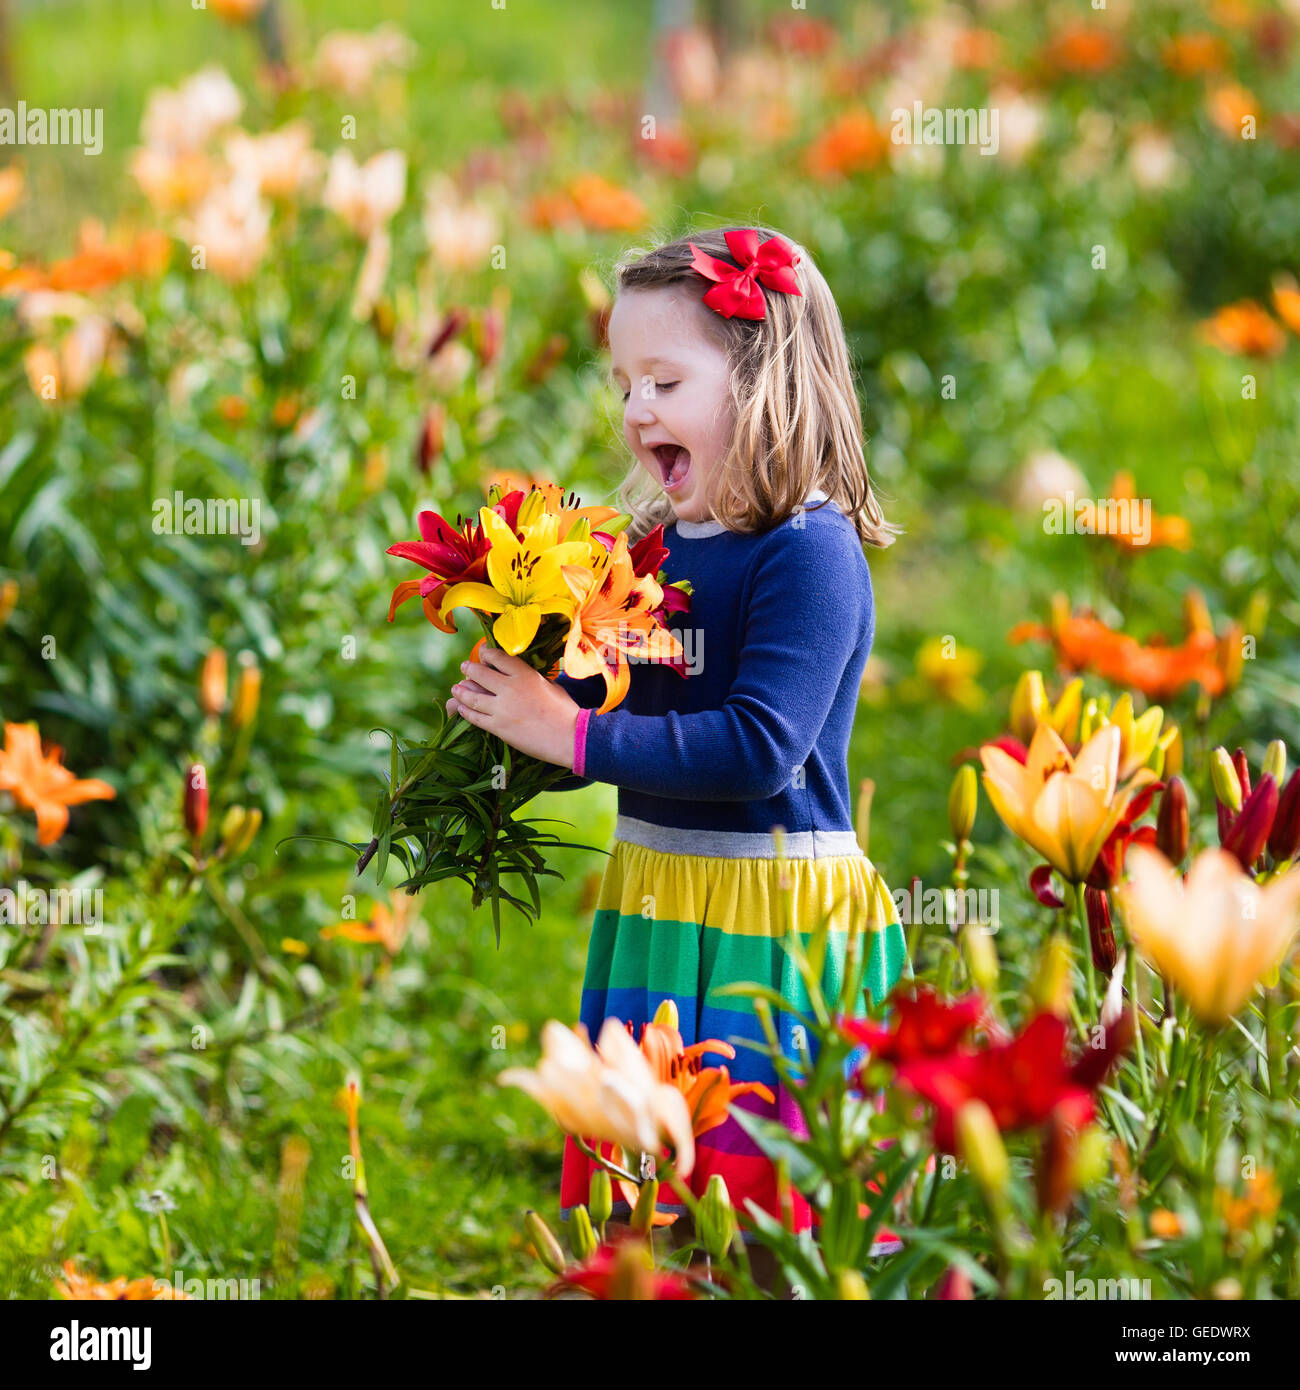 cute little girl picking lily flowers in blooming summer garden